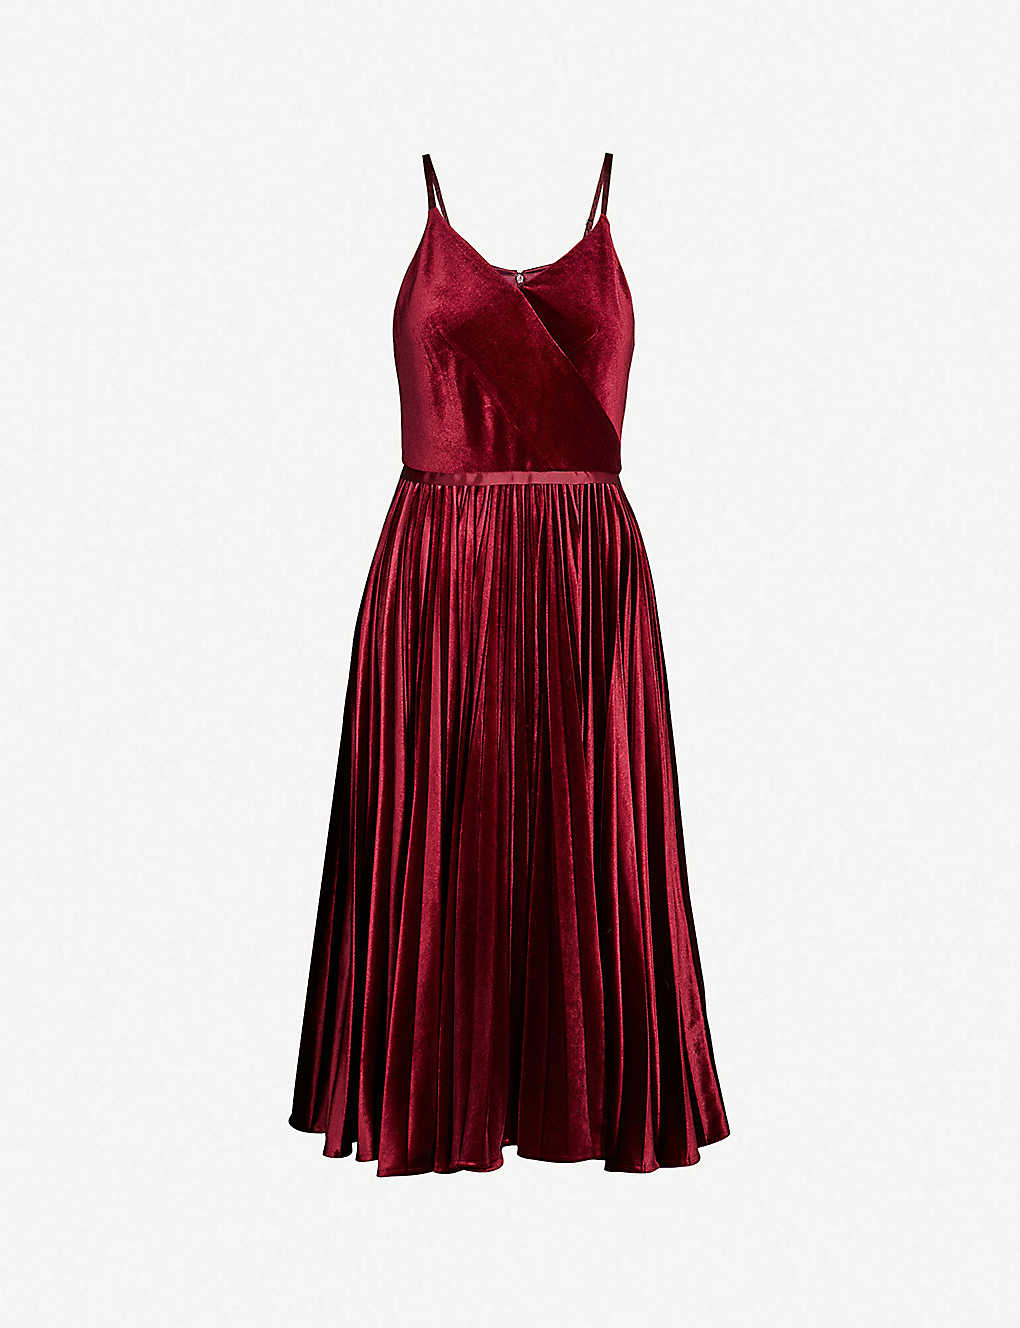 06f0d679b21f TED BAKER - Pleated-skirt velvet midi dress | Selfridges.com